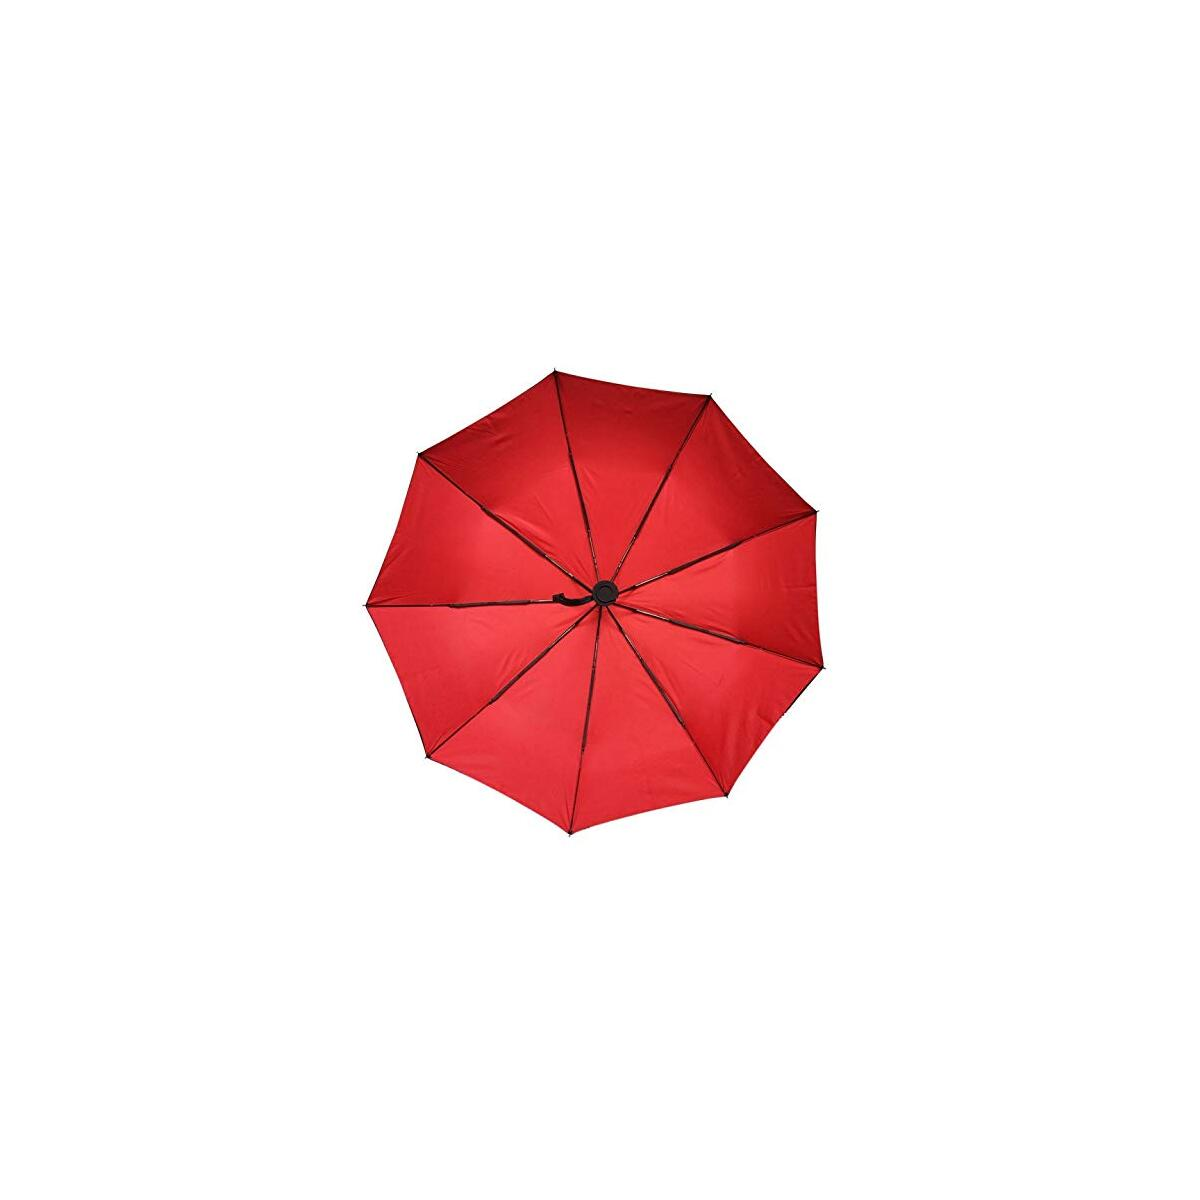 JONAKI Premium Quality Double Canopy Super Windproof Automatic Compact Umbrellas, User-Friendly Portable, Lightweight Automatic Travel Umbrella